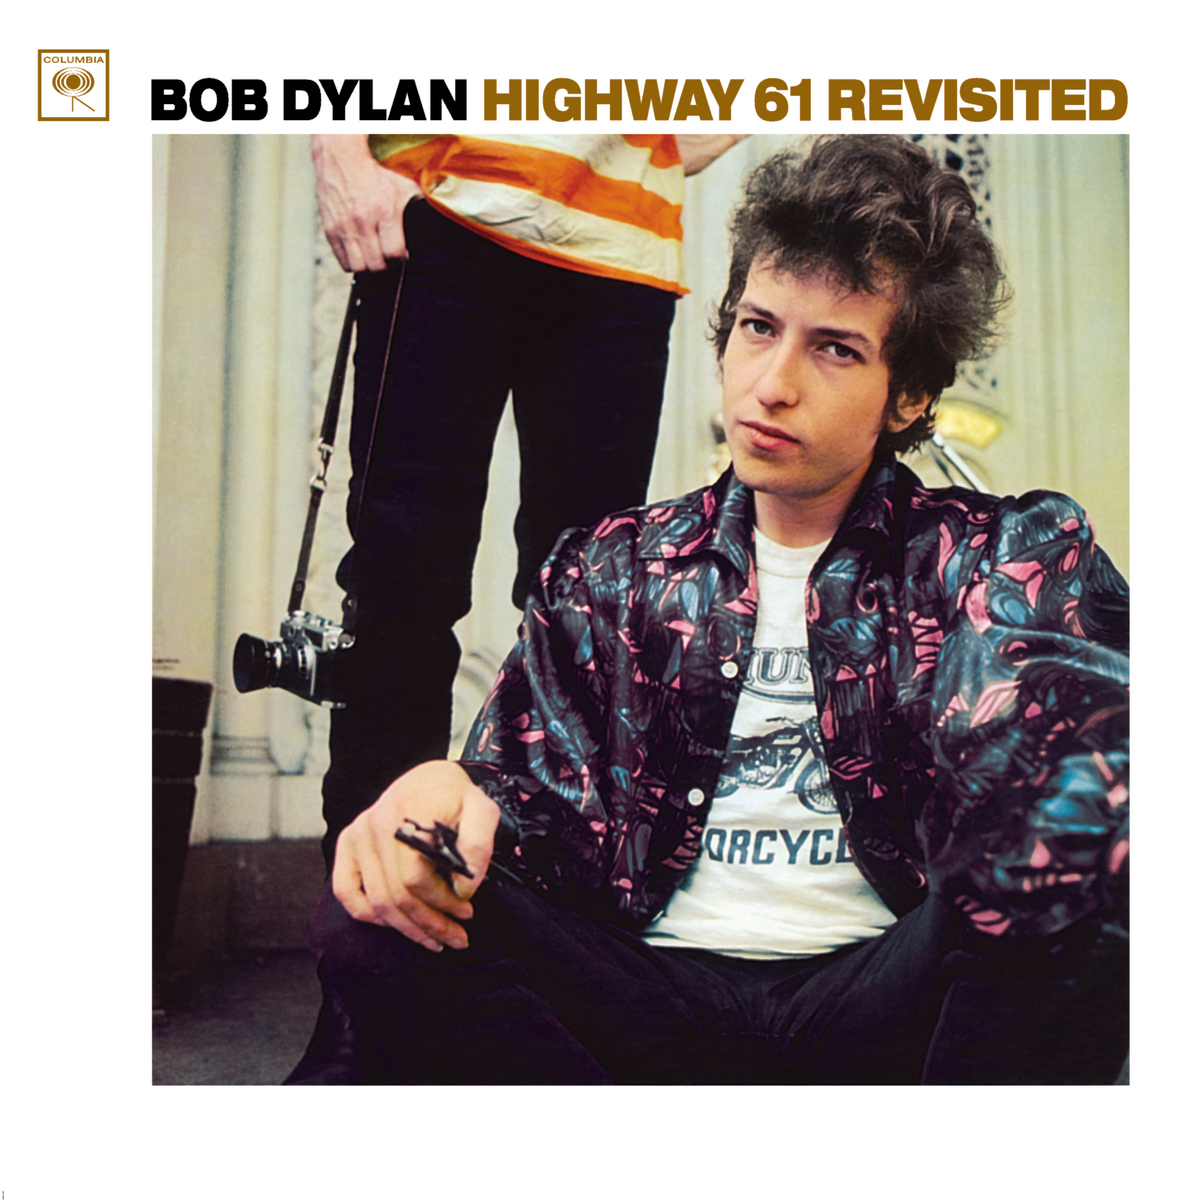 Highway 61 Revisited - Bob Dylan - Musik - COLUMBIA - 5099751235125 - March 22, 2004